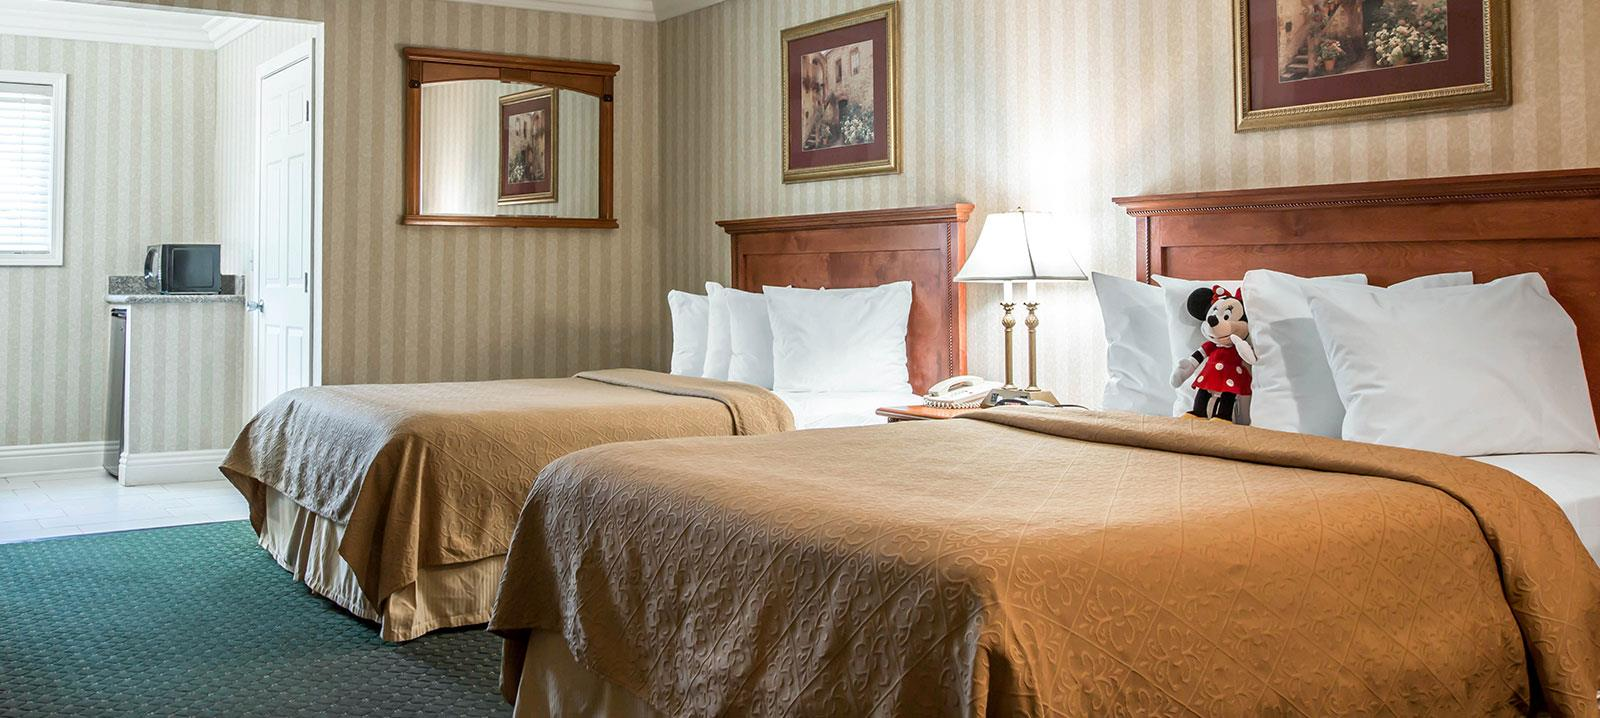 5 night stay and a City Pass from Anaheim Hotel